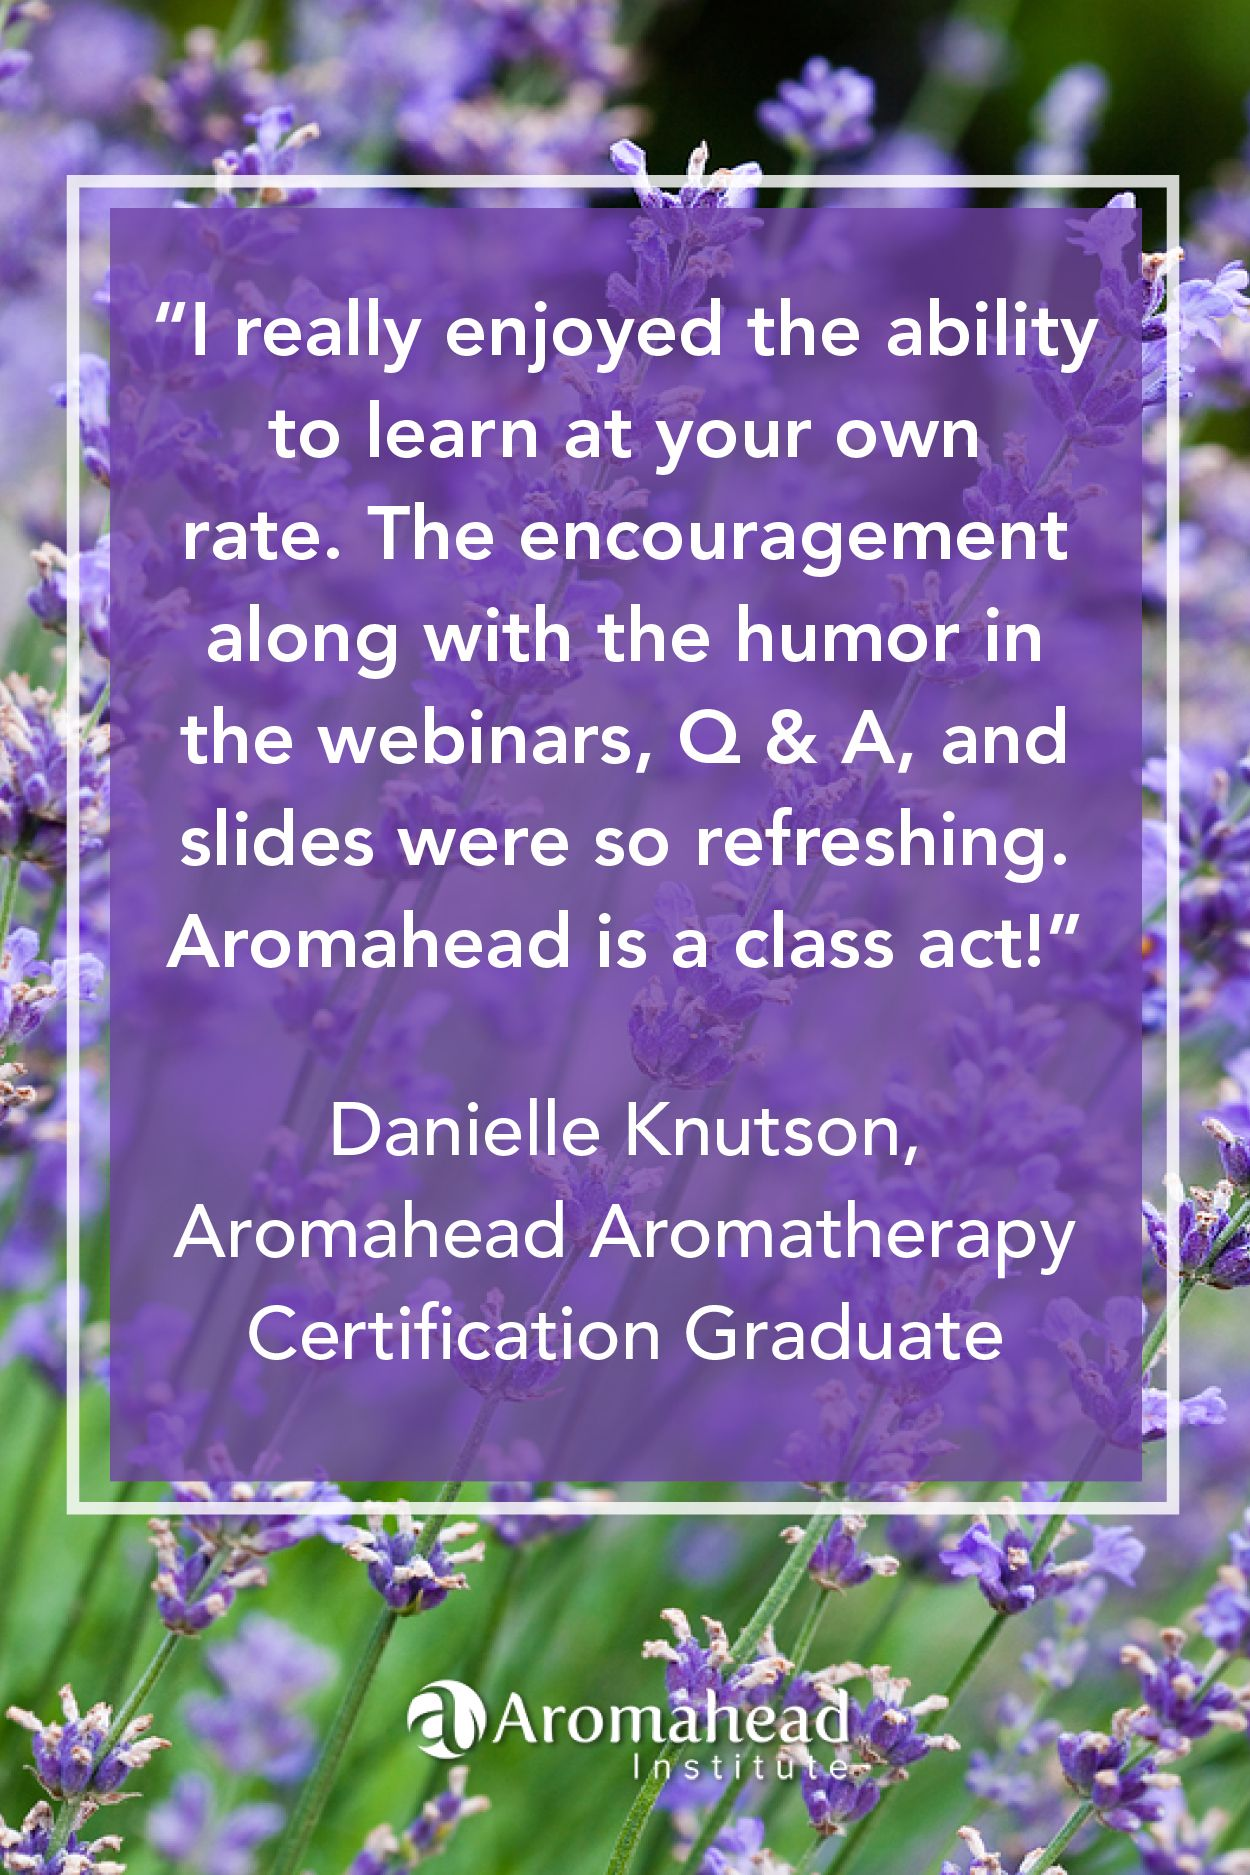 What I loved about Aromahead: I really enjoyed the ability to learn at your own rate. The encouragement along with the humor in the webinars, Q & A, and slides were so refreshing.  Aromahead is a class act!